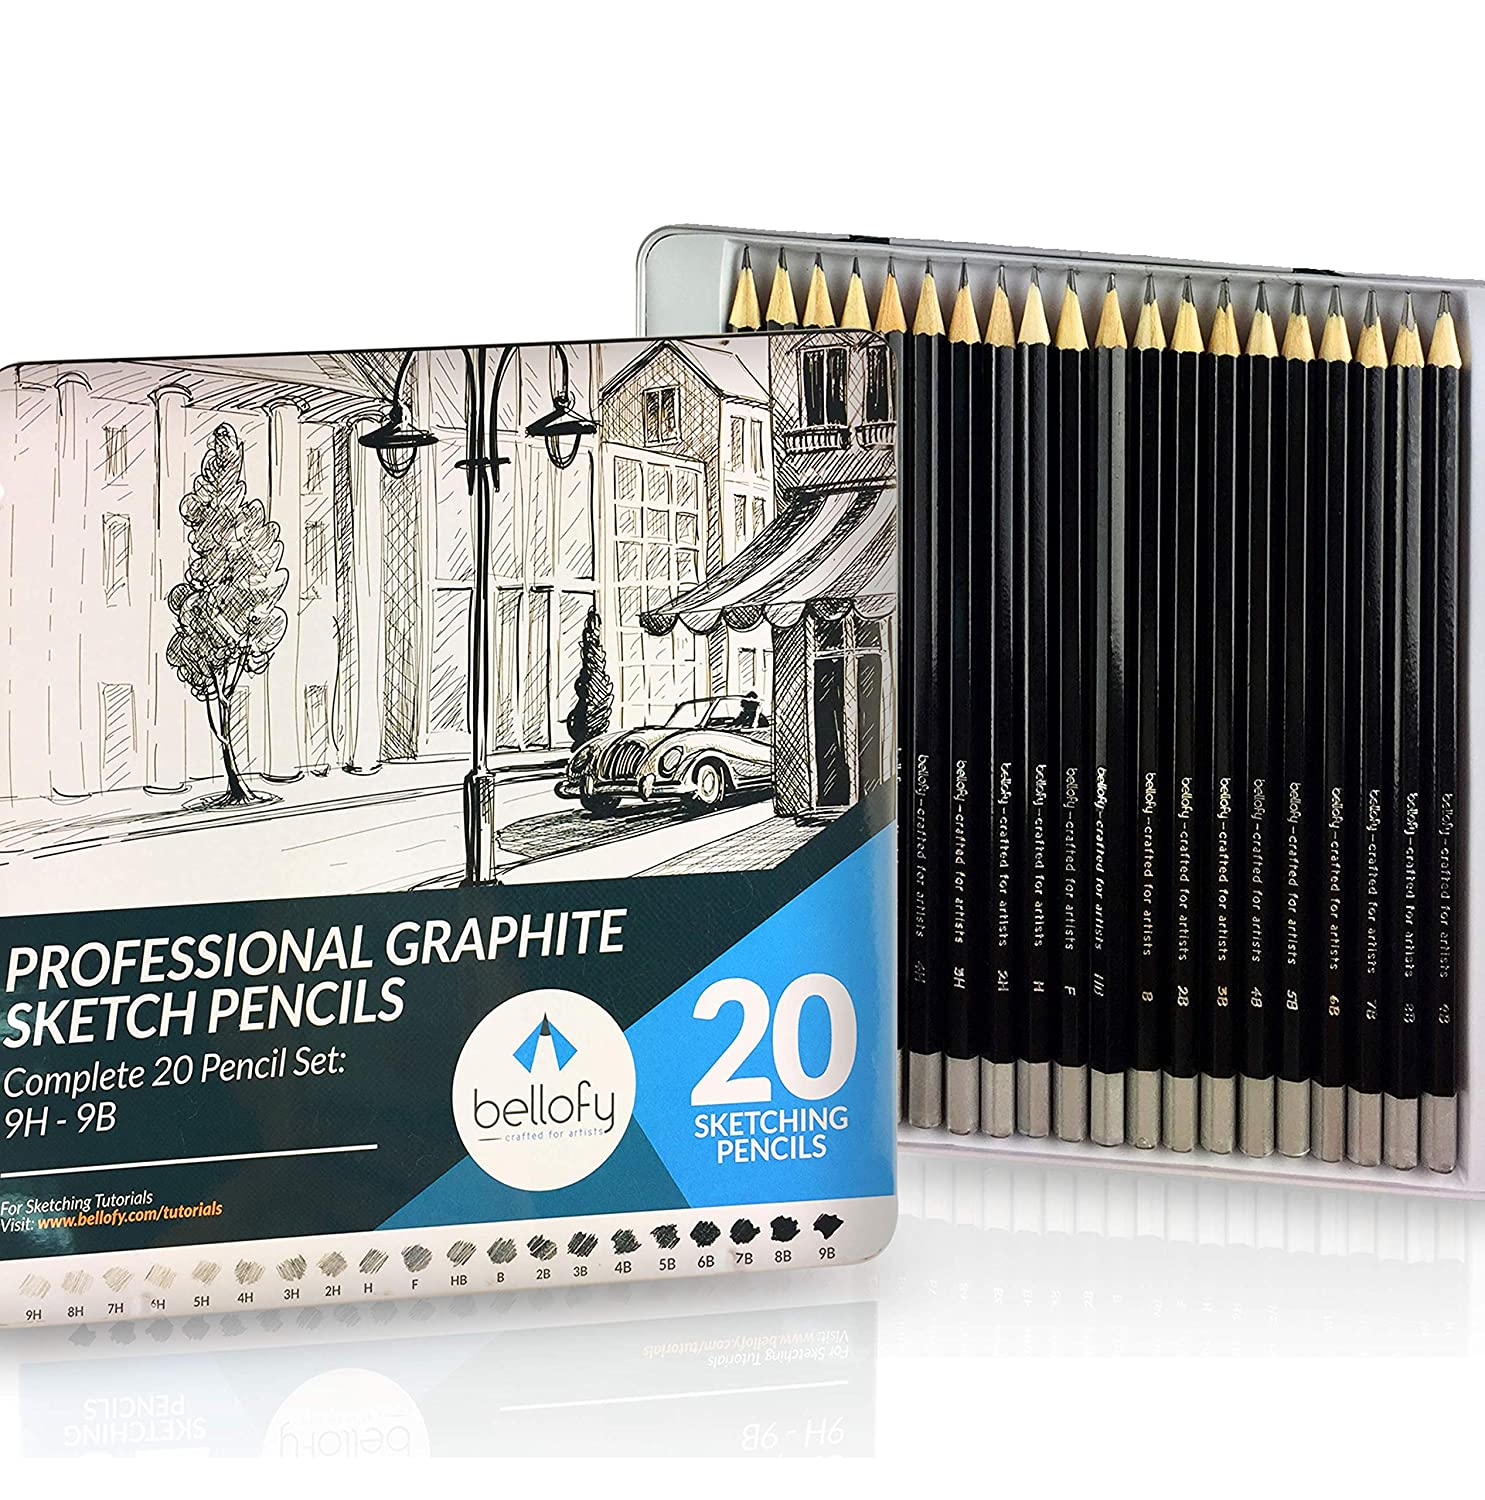 Bellofy 20 sketching pencils complete professional graphite pencil set for sketch drawing 9b to 9h art travel set for adults and kids